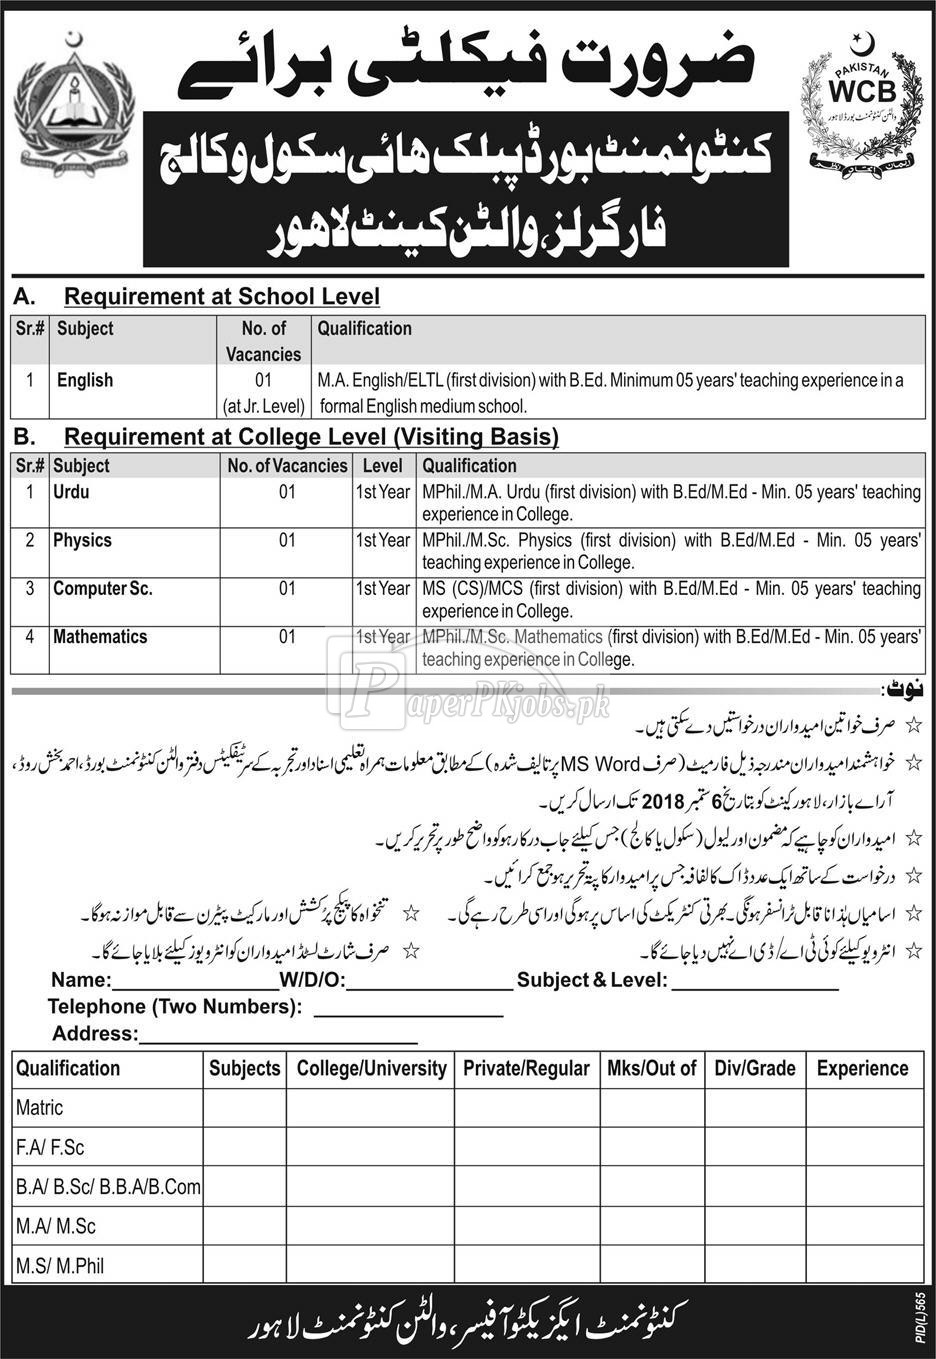 Cantonment Board Public High School & College for Girls Walton Cantt Lahore Jobs 2018